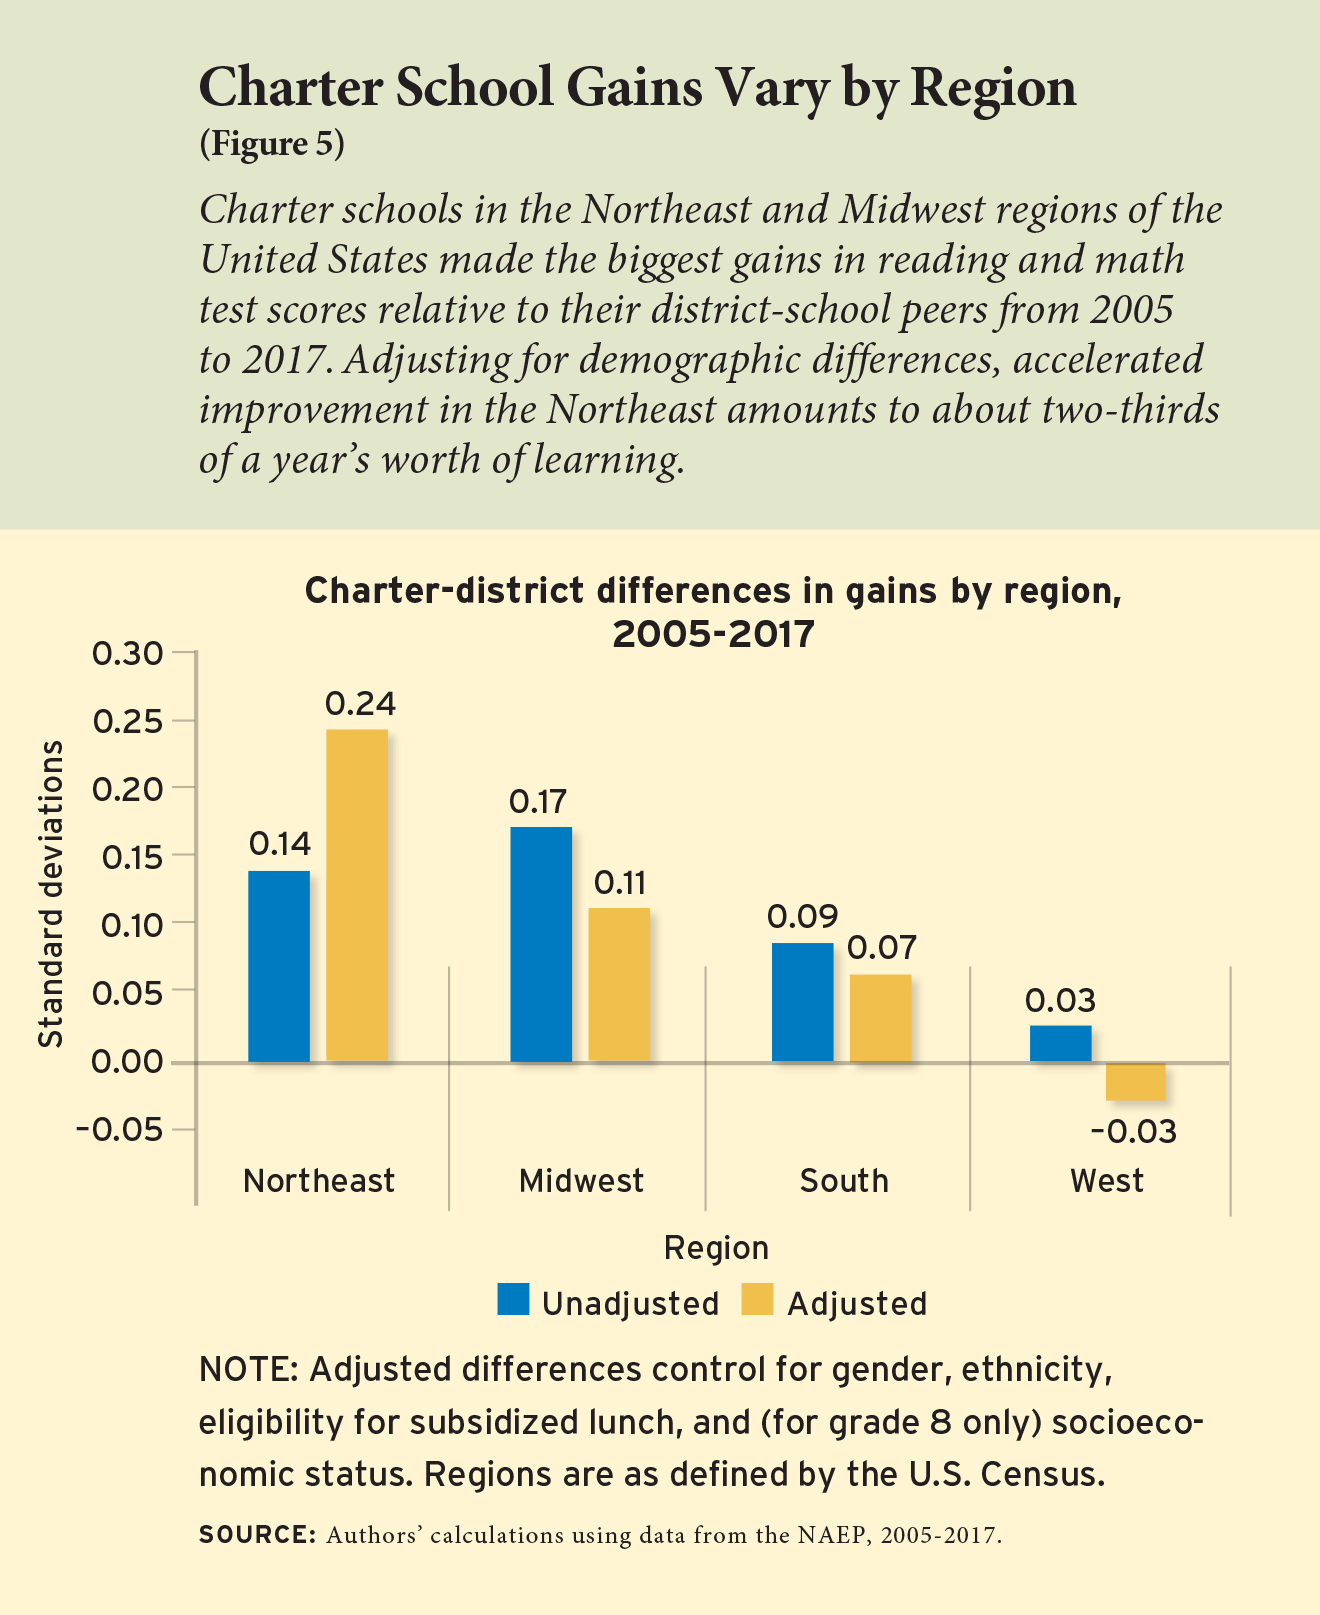 Figure 5 - Charter School Gains Vary by Region